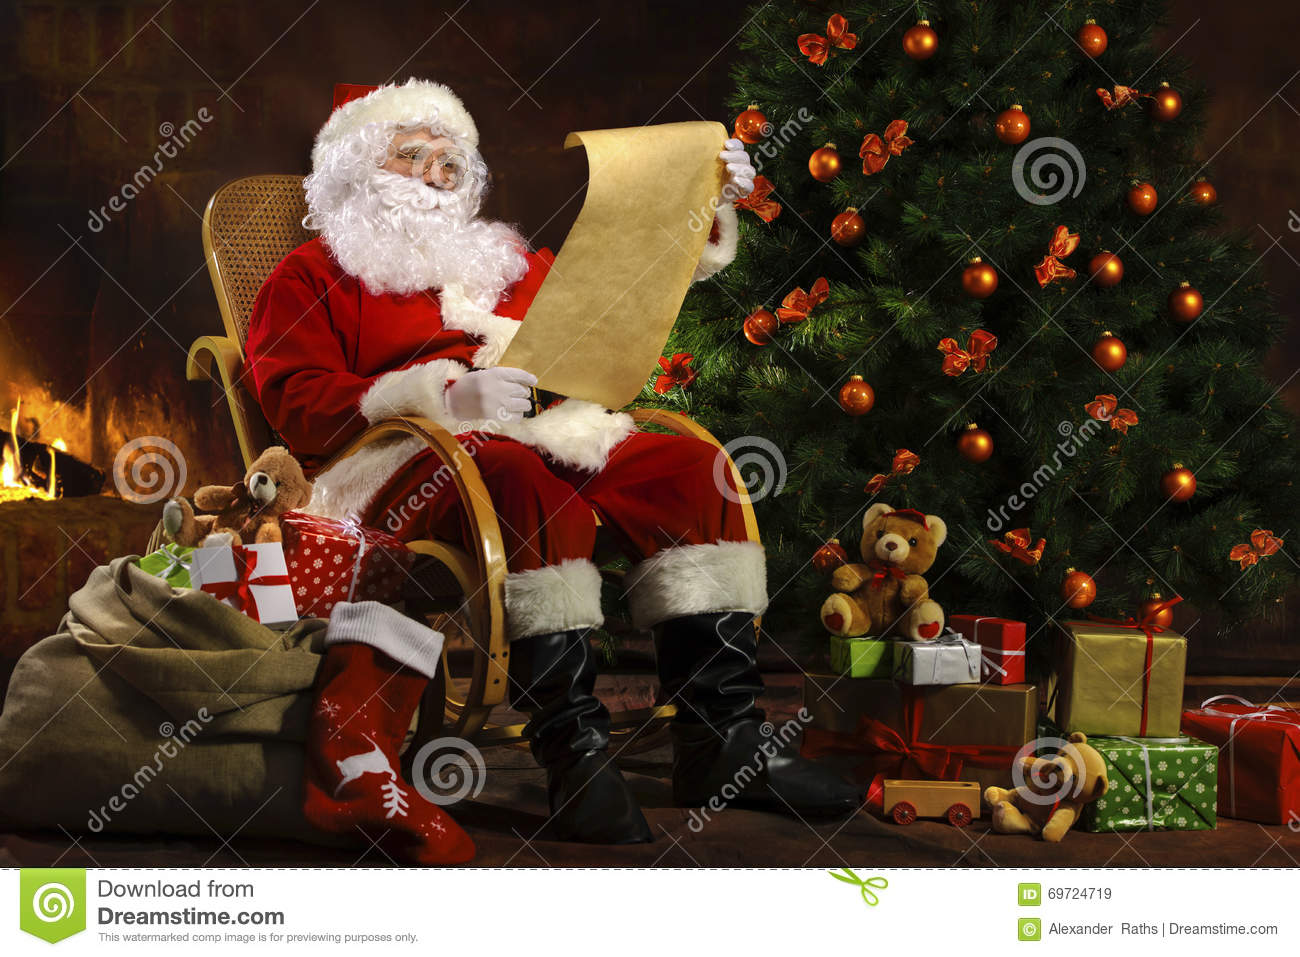 Santa Claus Sitting In Front Of Fireplace Stock Photo - Image ...